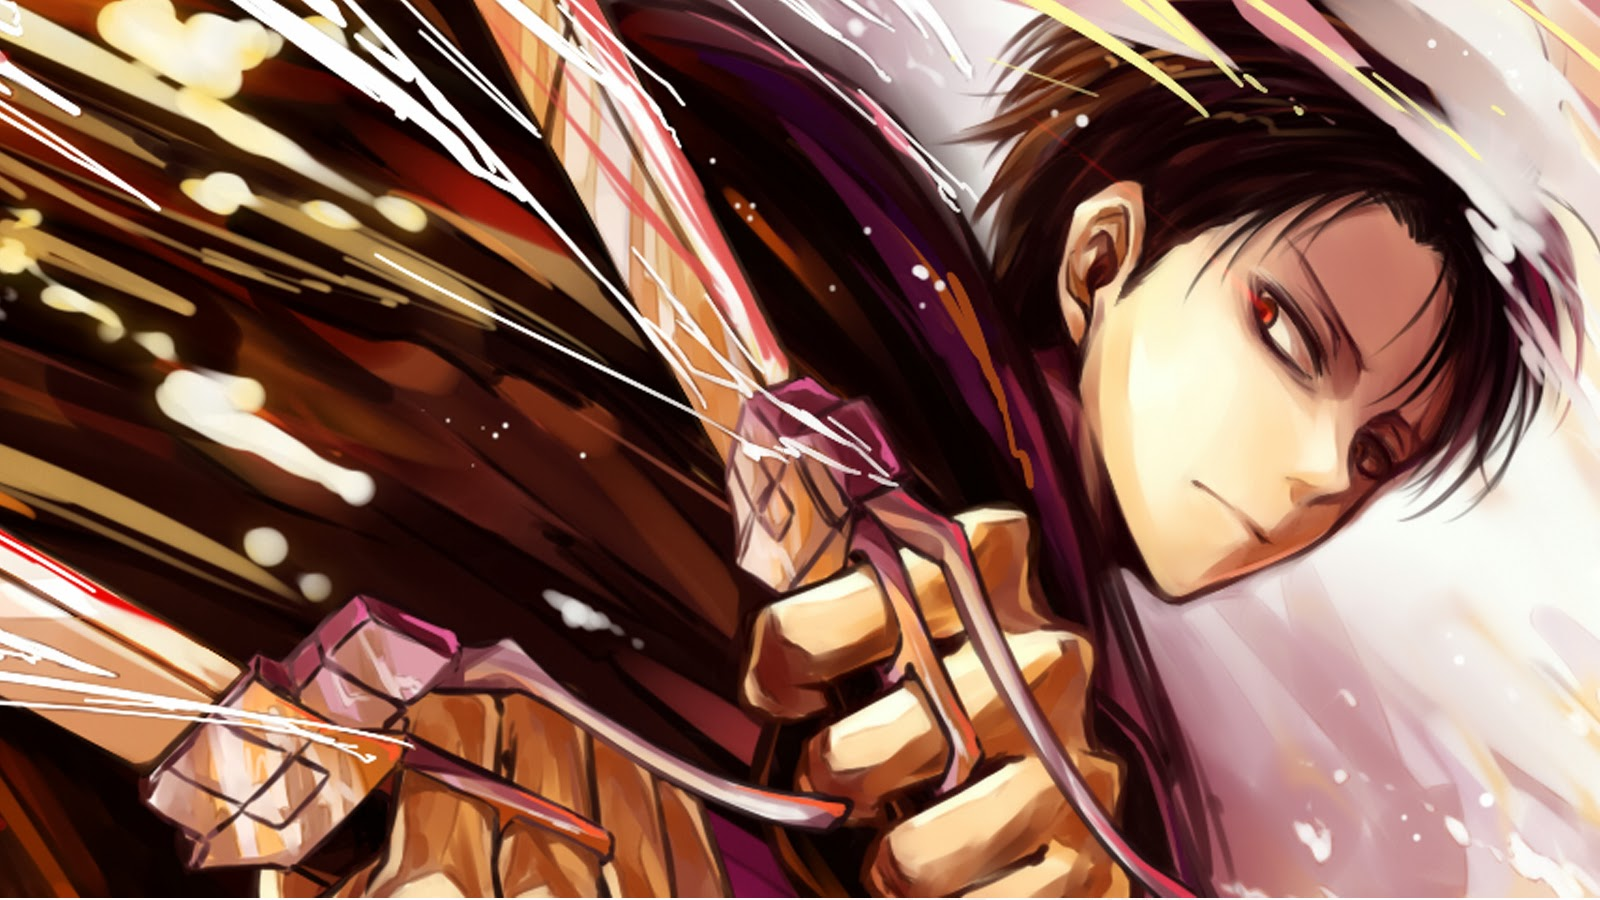 titans red shingeki no - photo #23